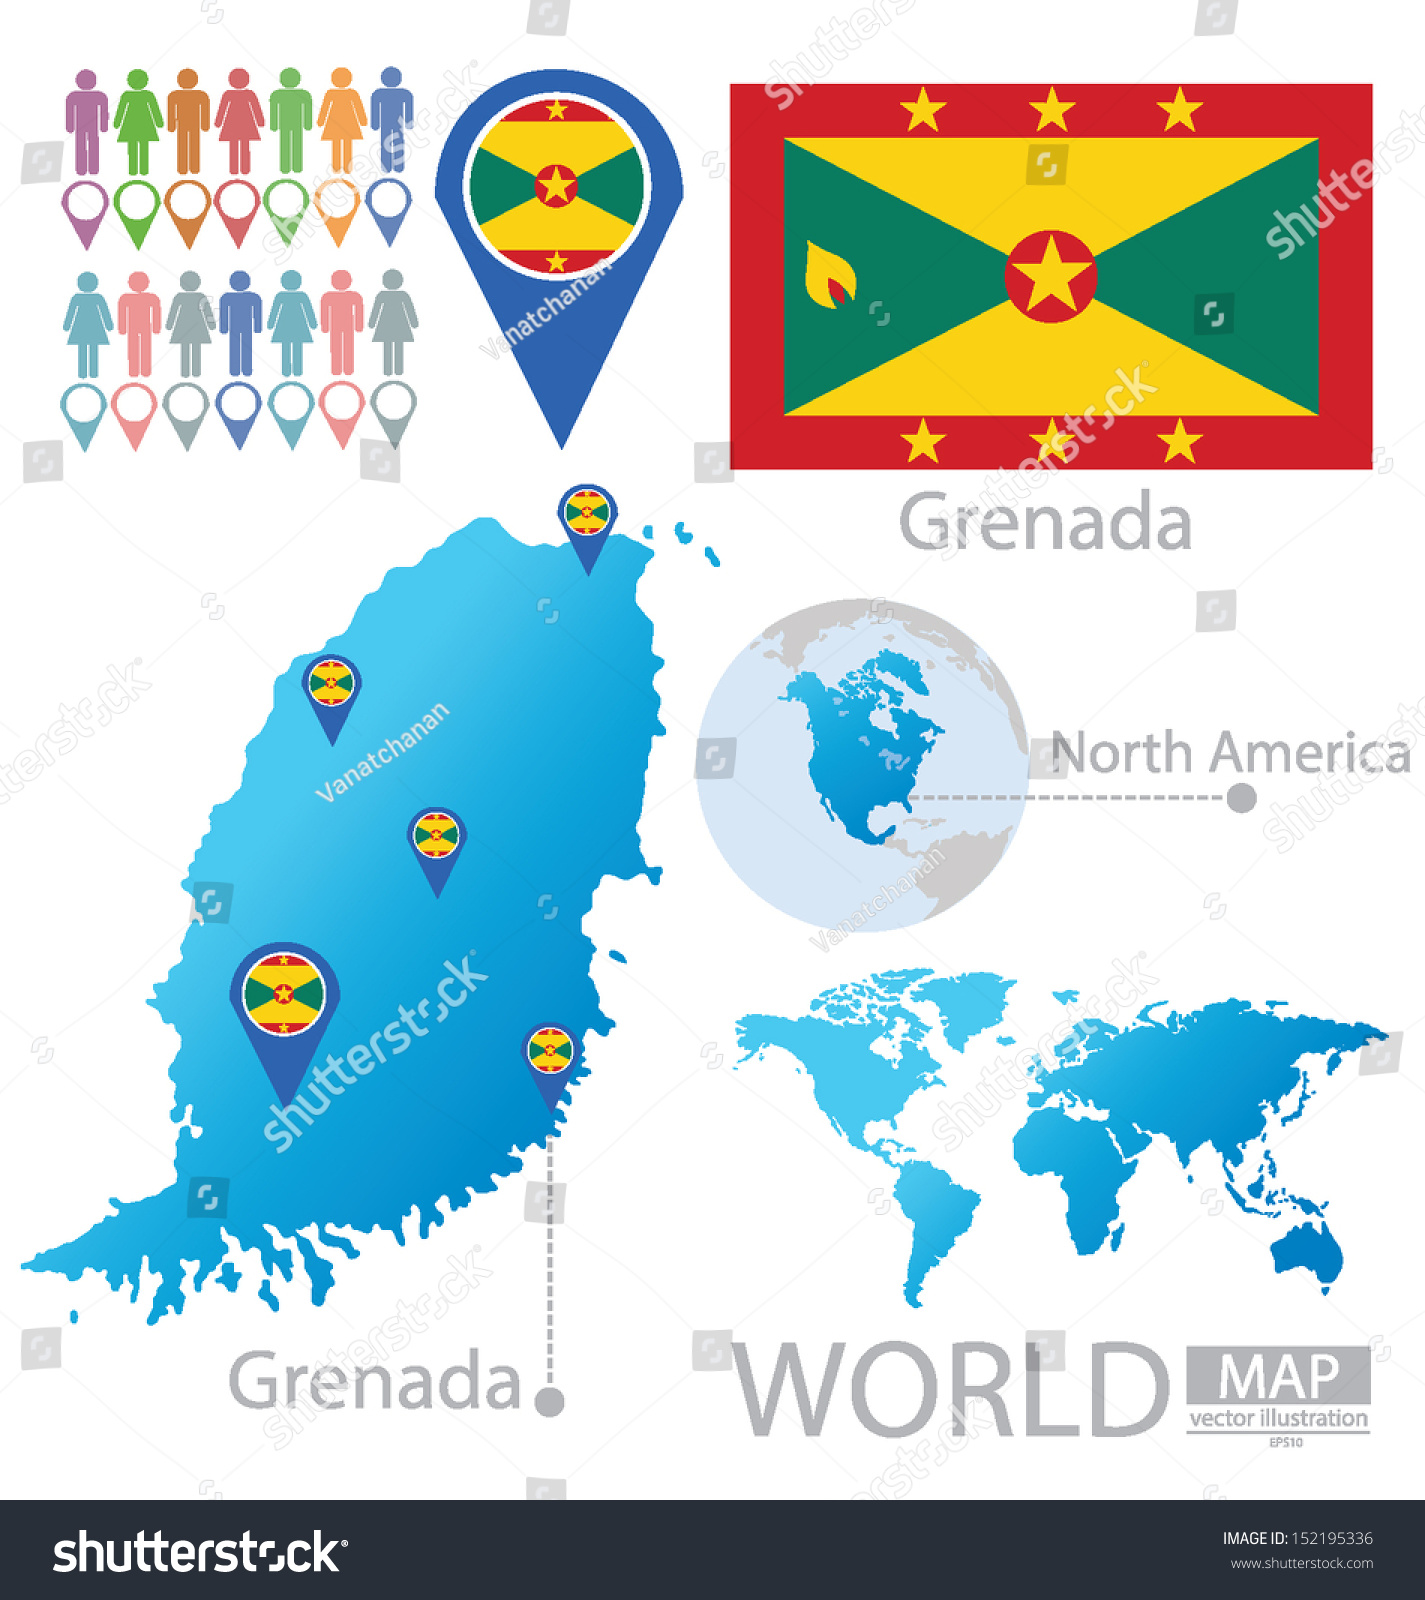 Grenada Flag North America World Map Stock Vector 152195336